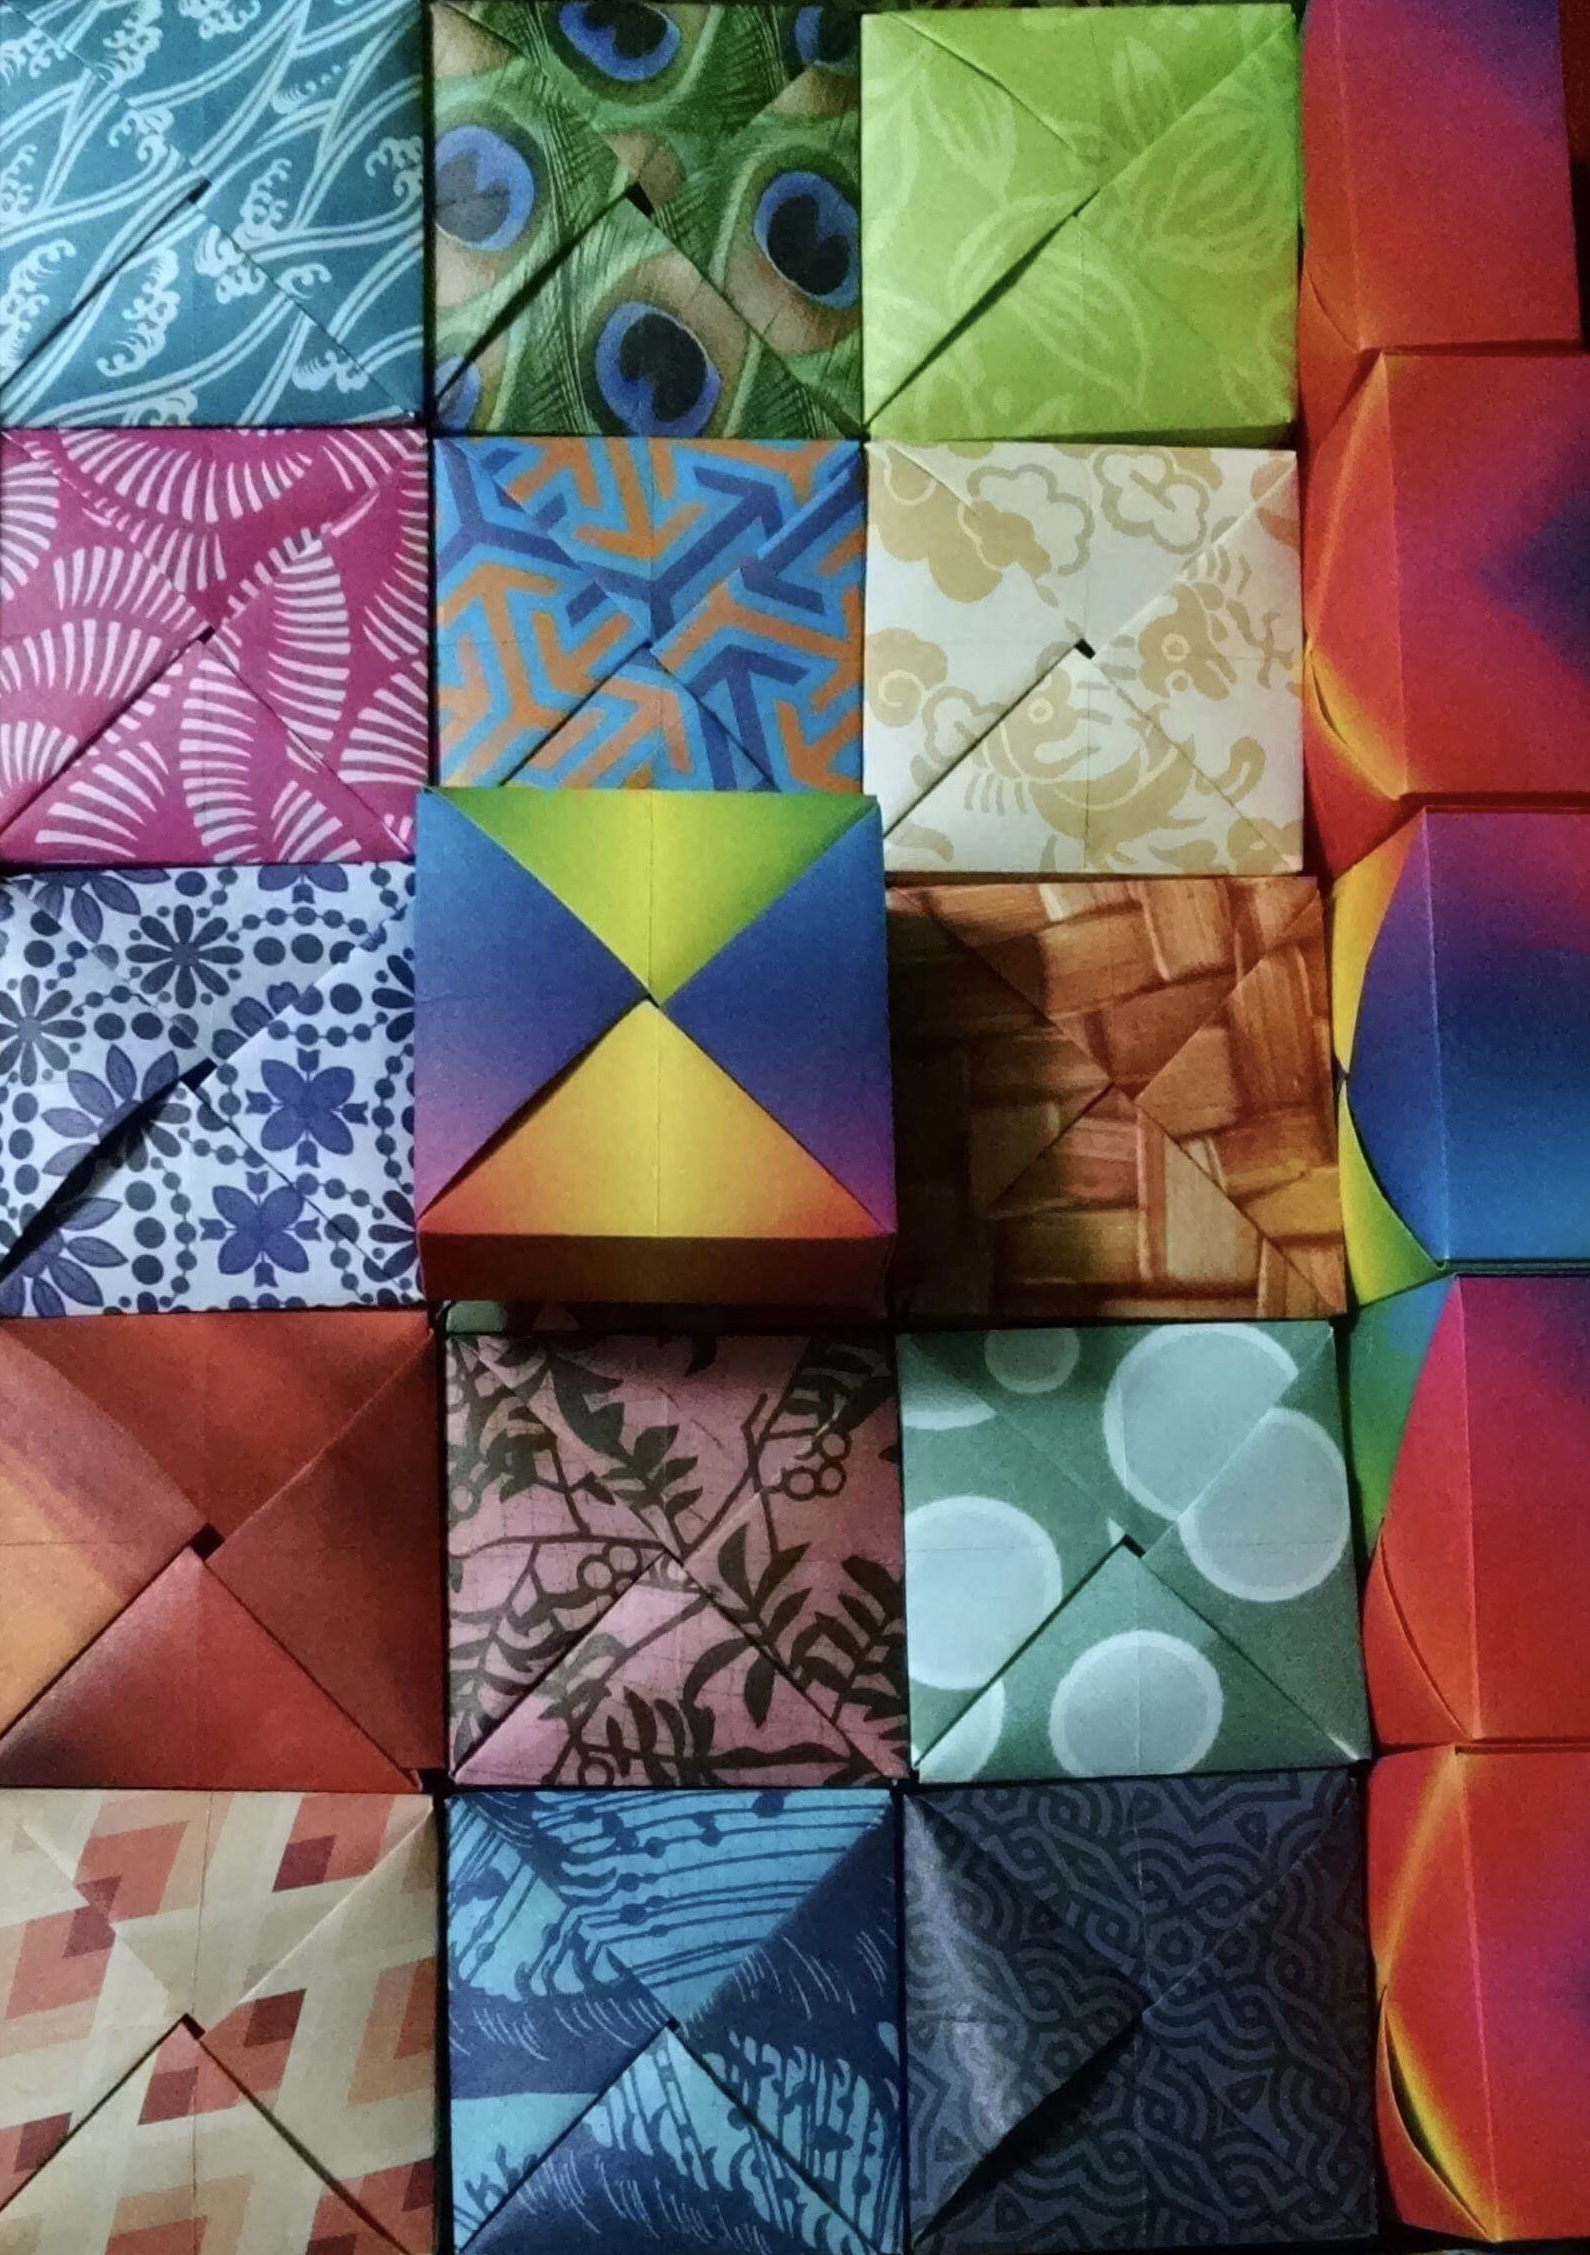 4_Nish_origami boxes and ornaments.jpg